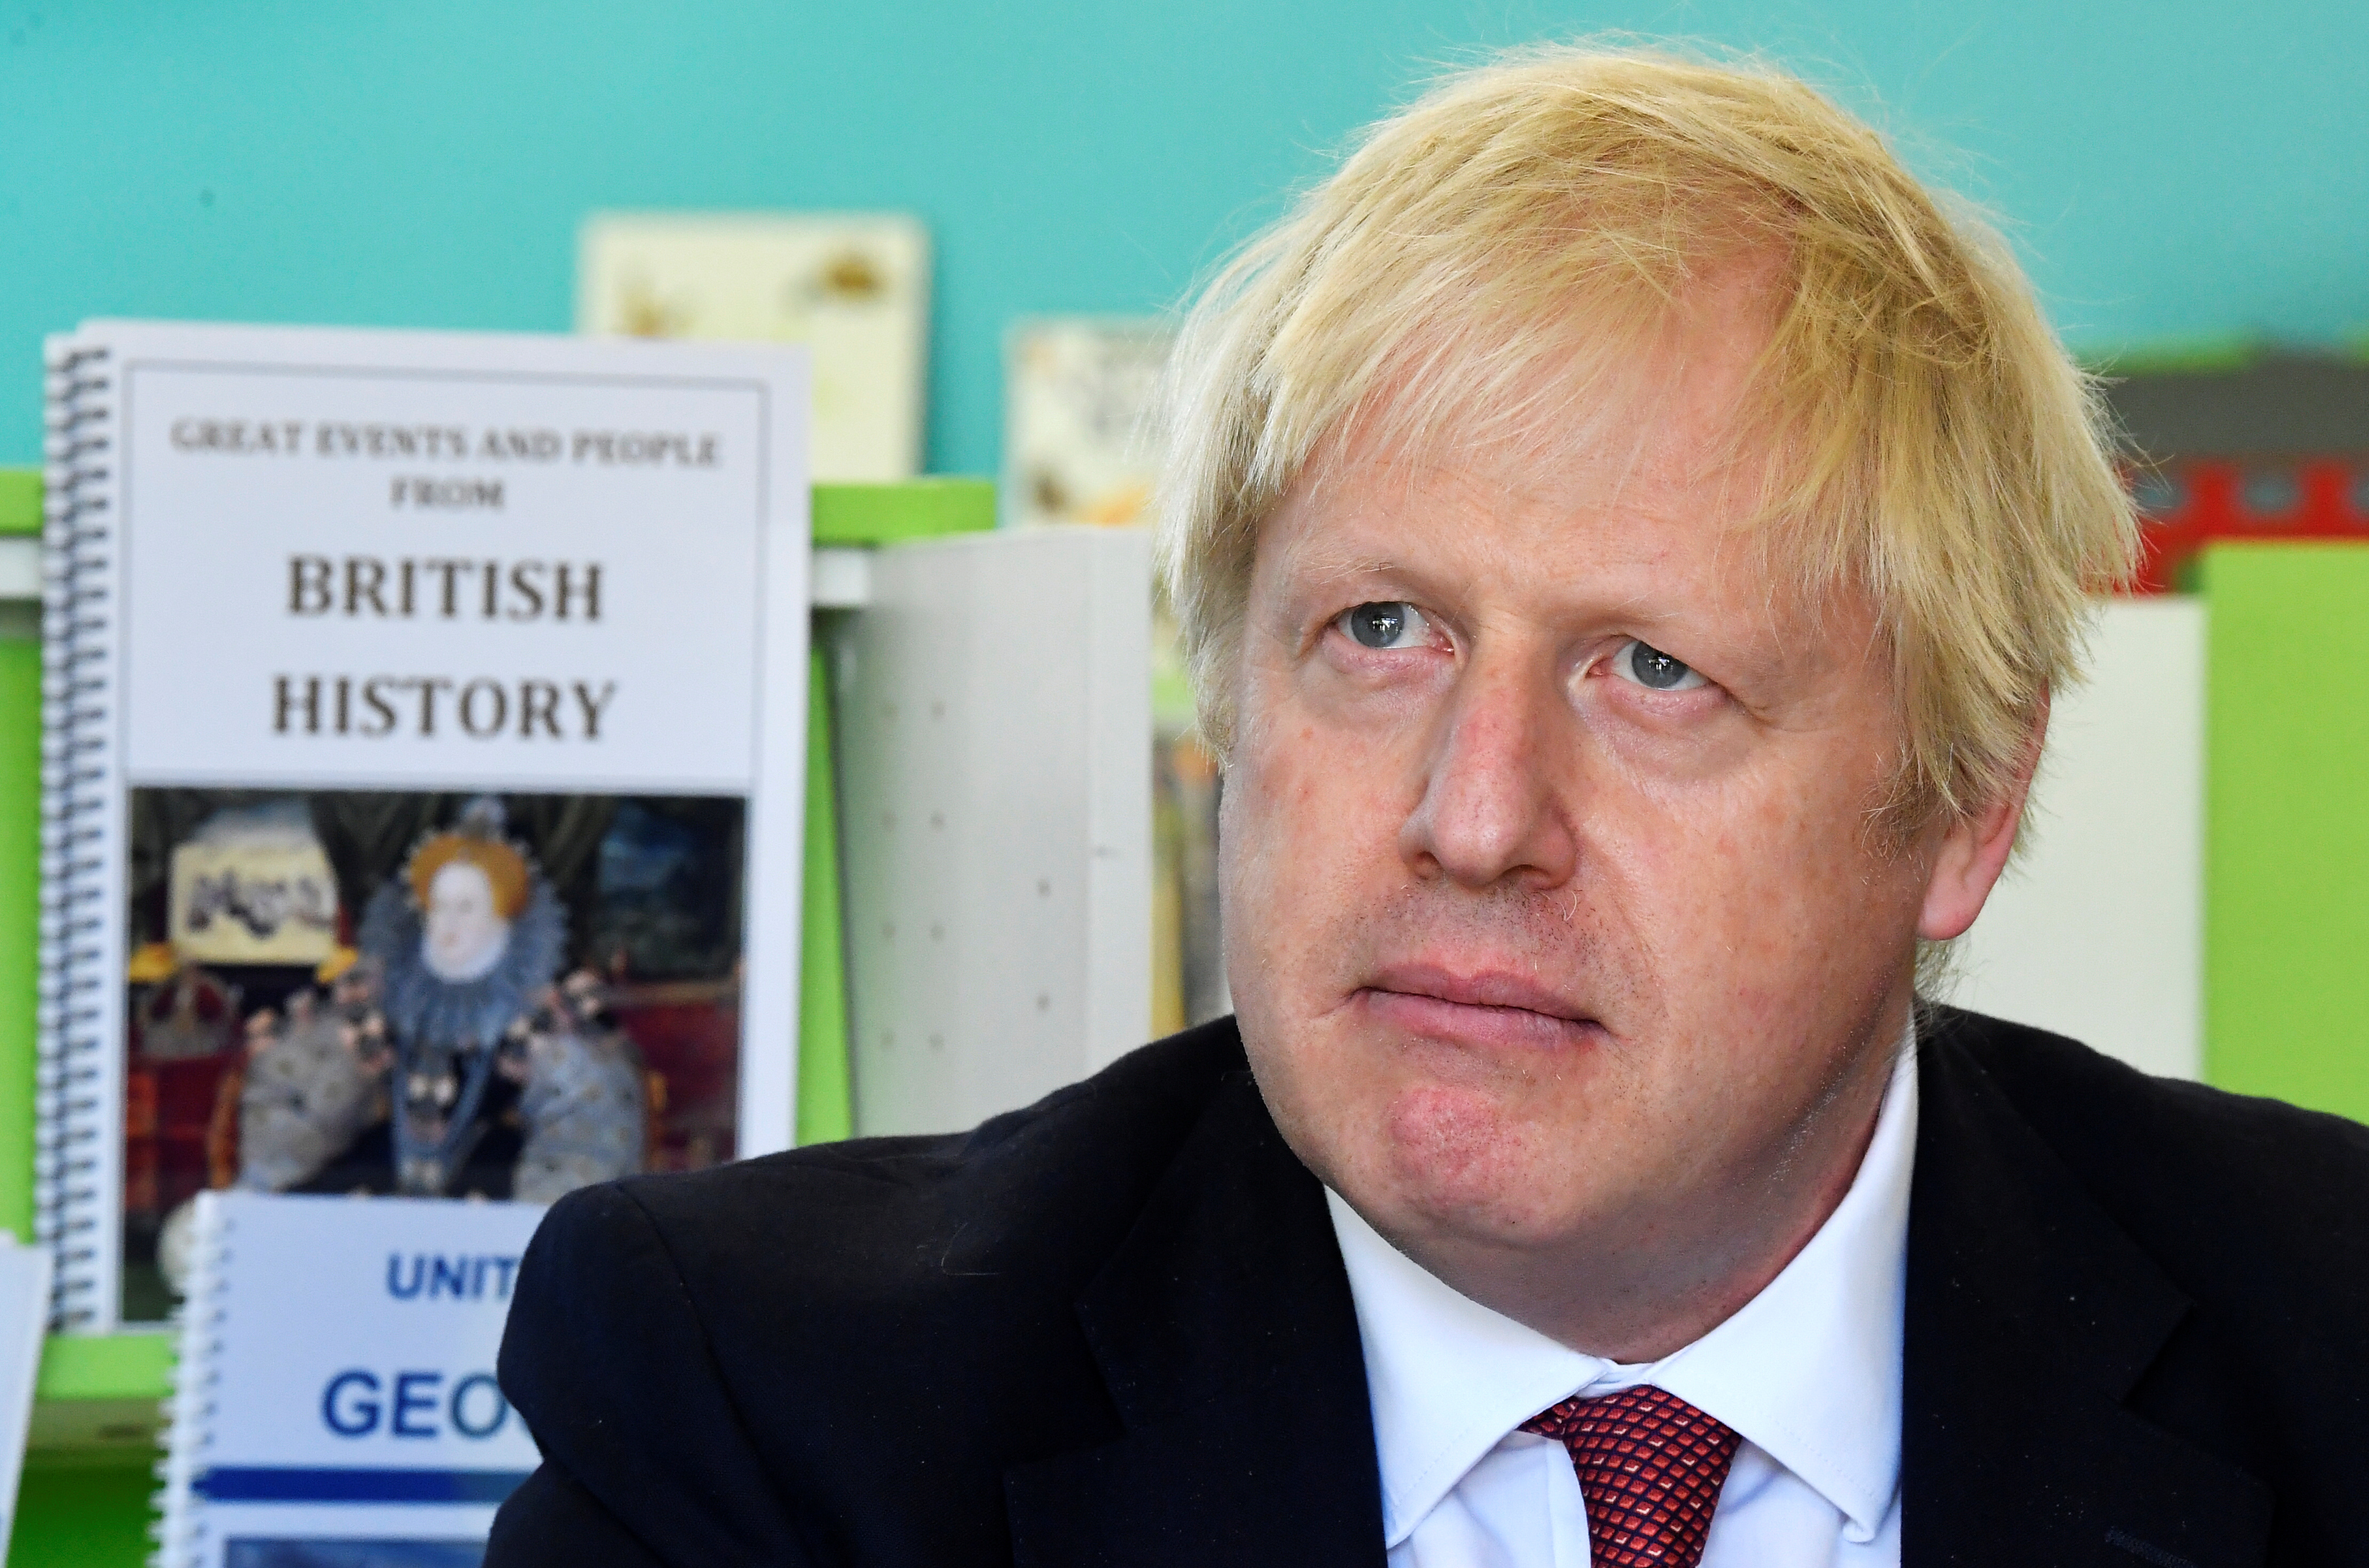 British Prime Minister Boris Johnson in a classroom with a British history textbook on a shelf behind him.